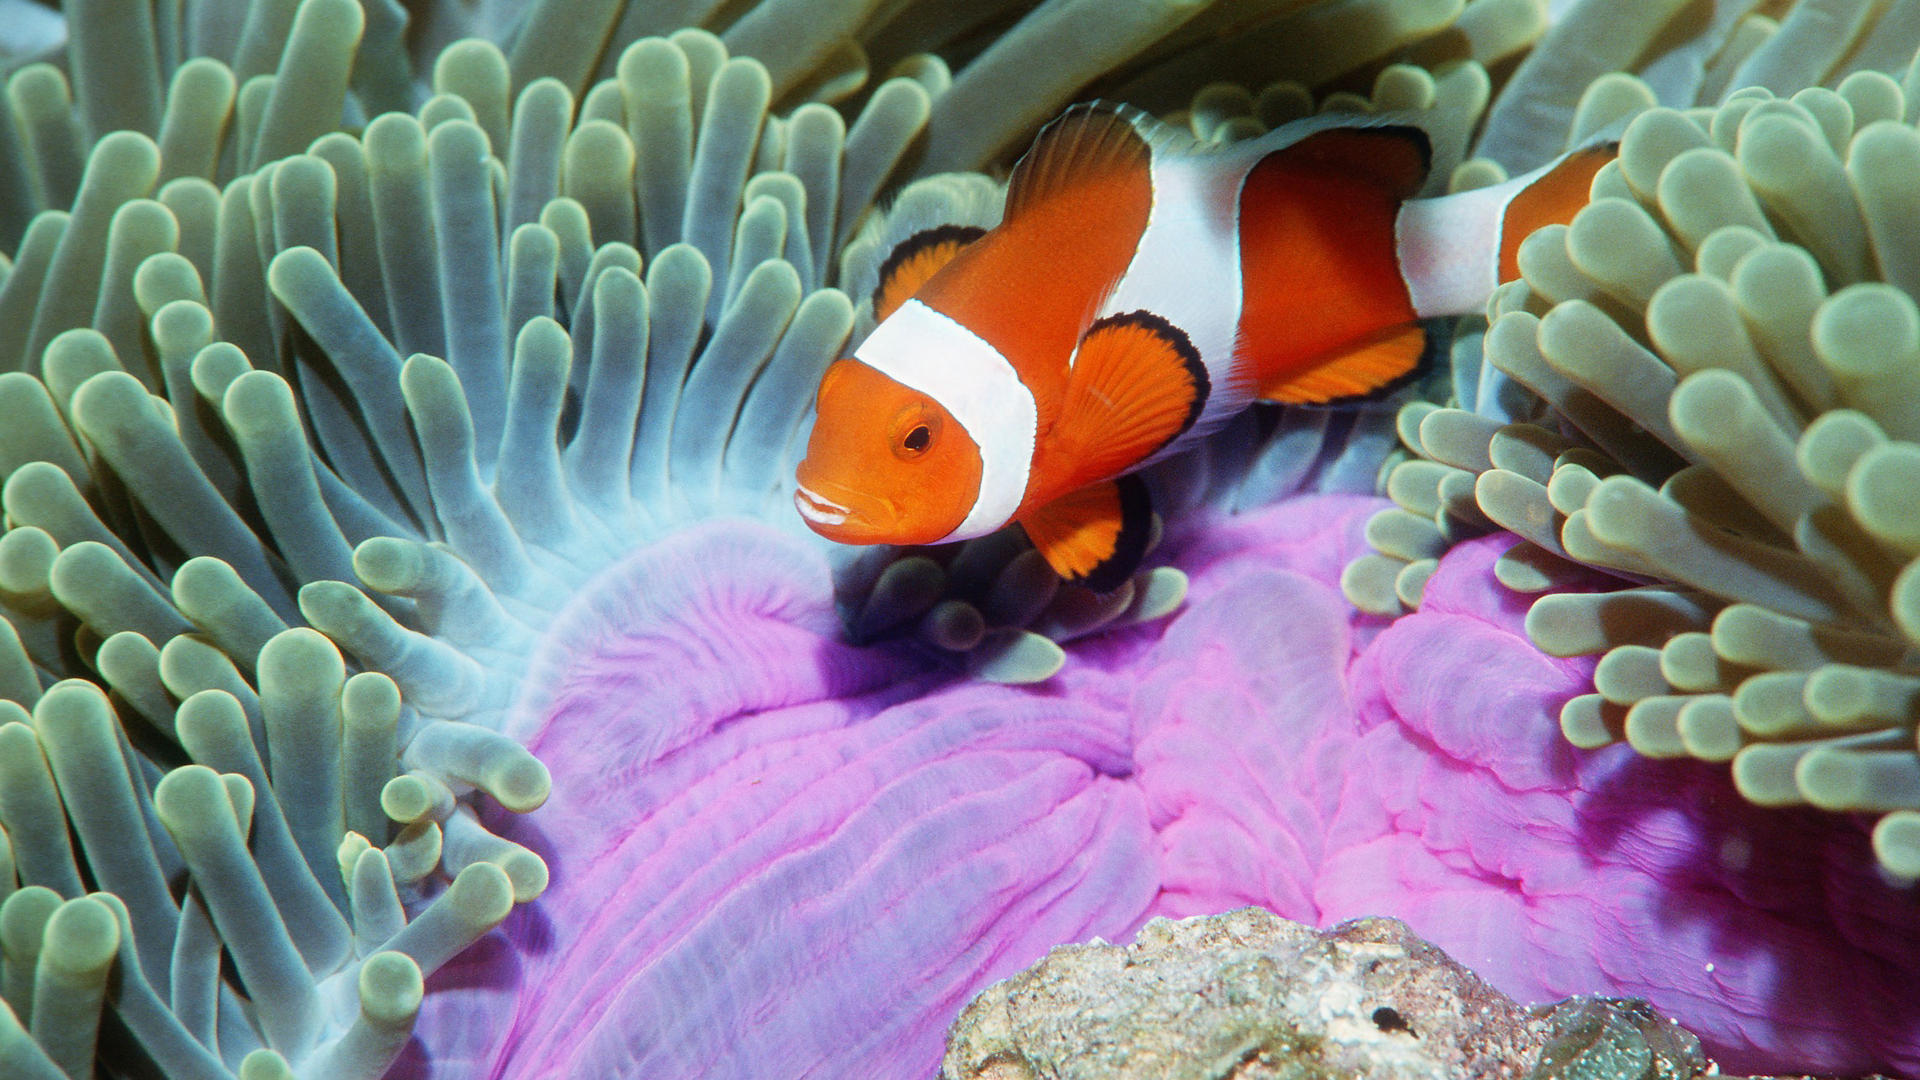 on October 8 2015 By Stephen Comments Off on Clown Fish Wallpapers 1920x1080